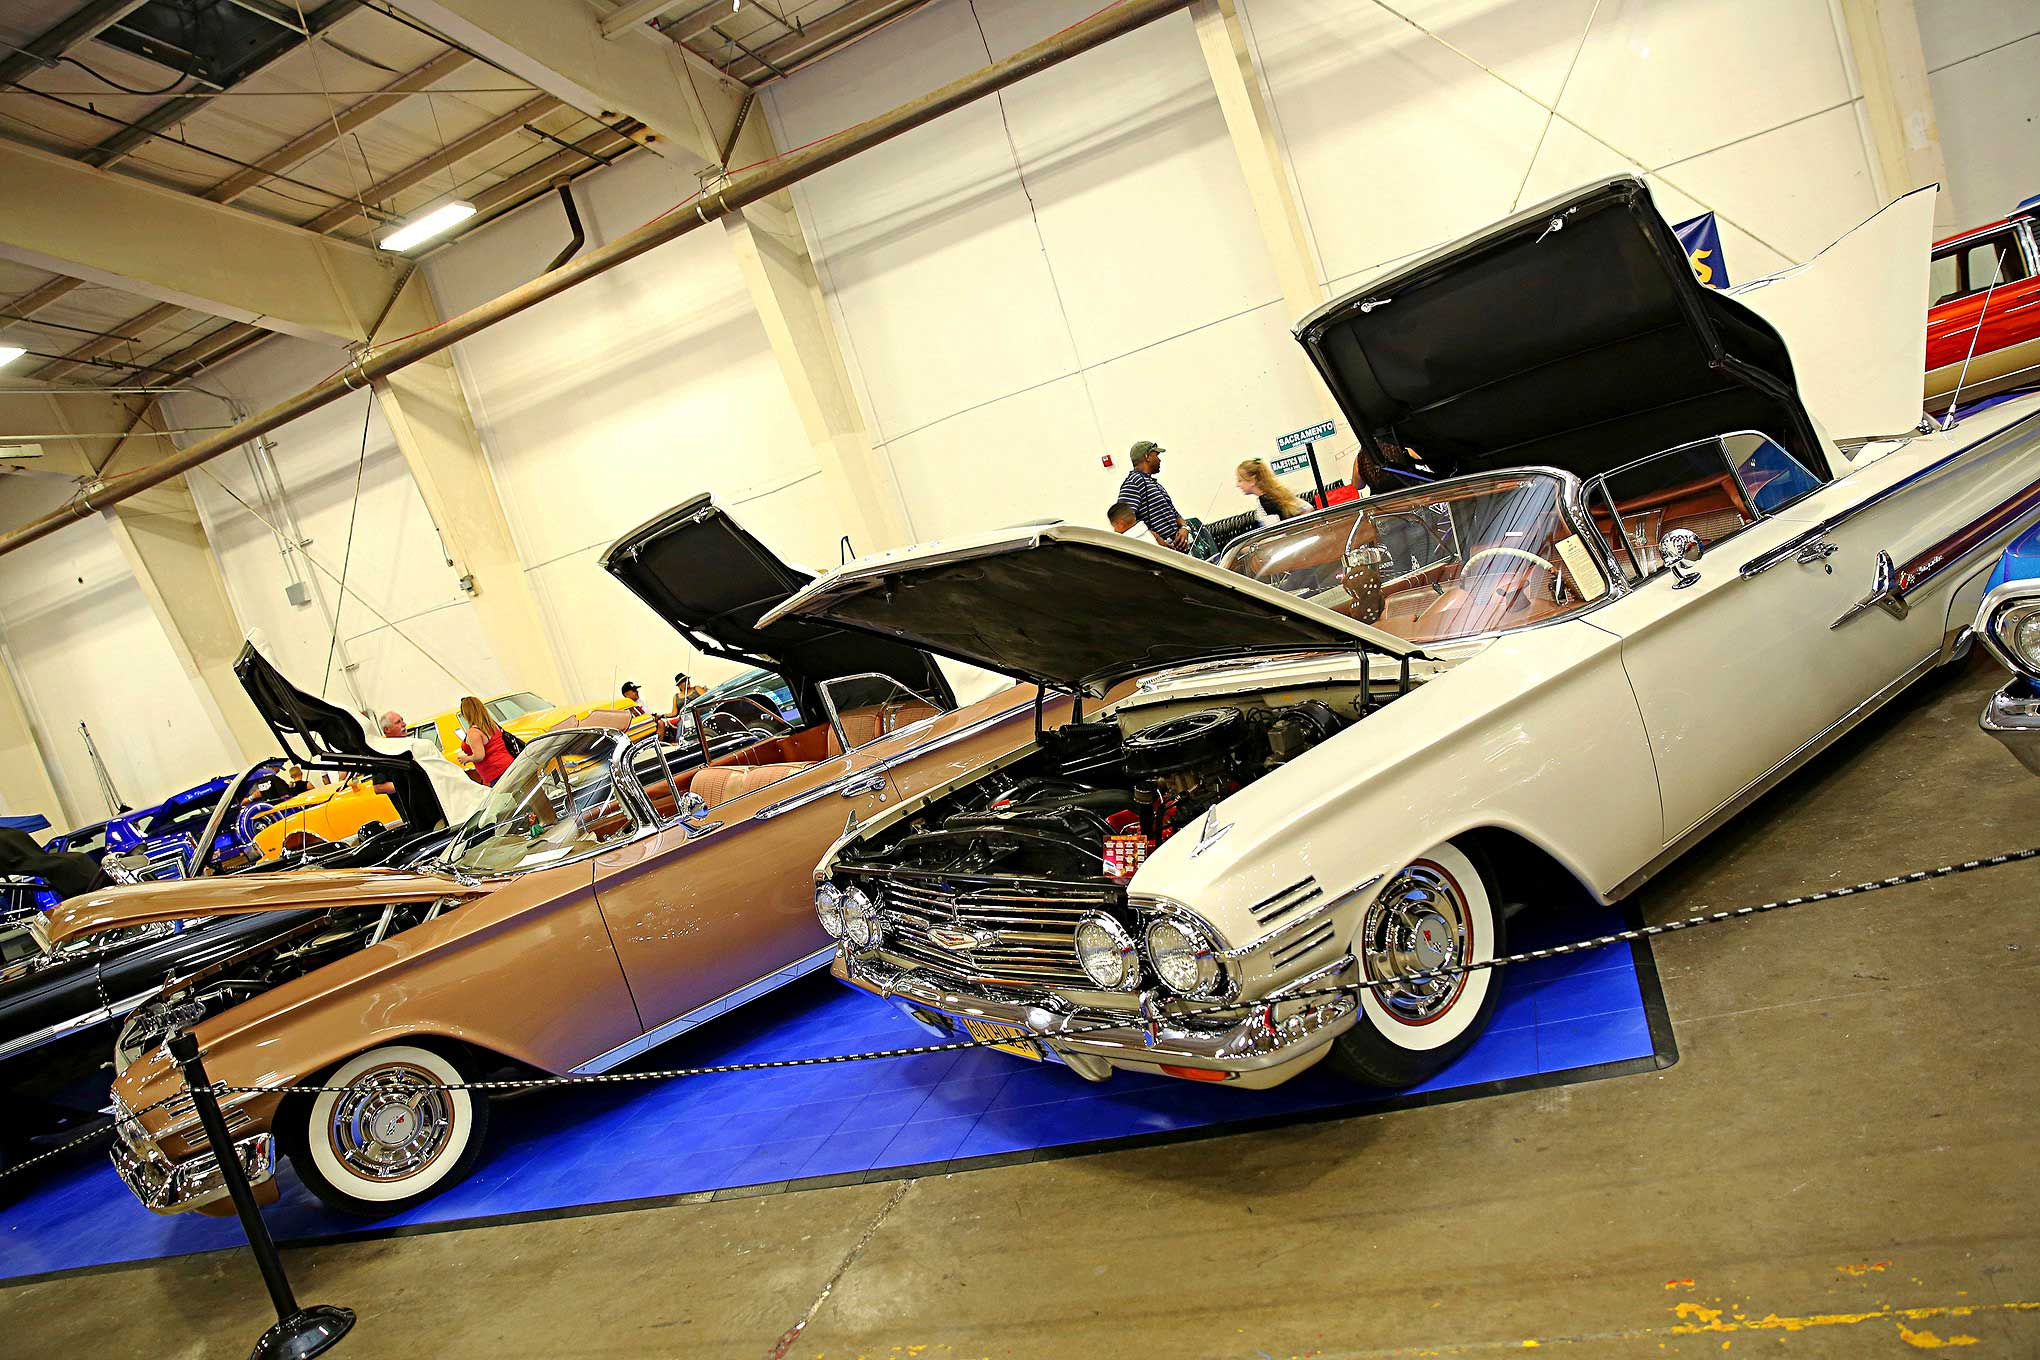 Family First Car Show - Car show in sacramento this weekend